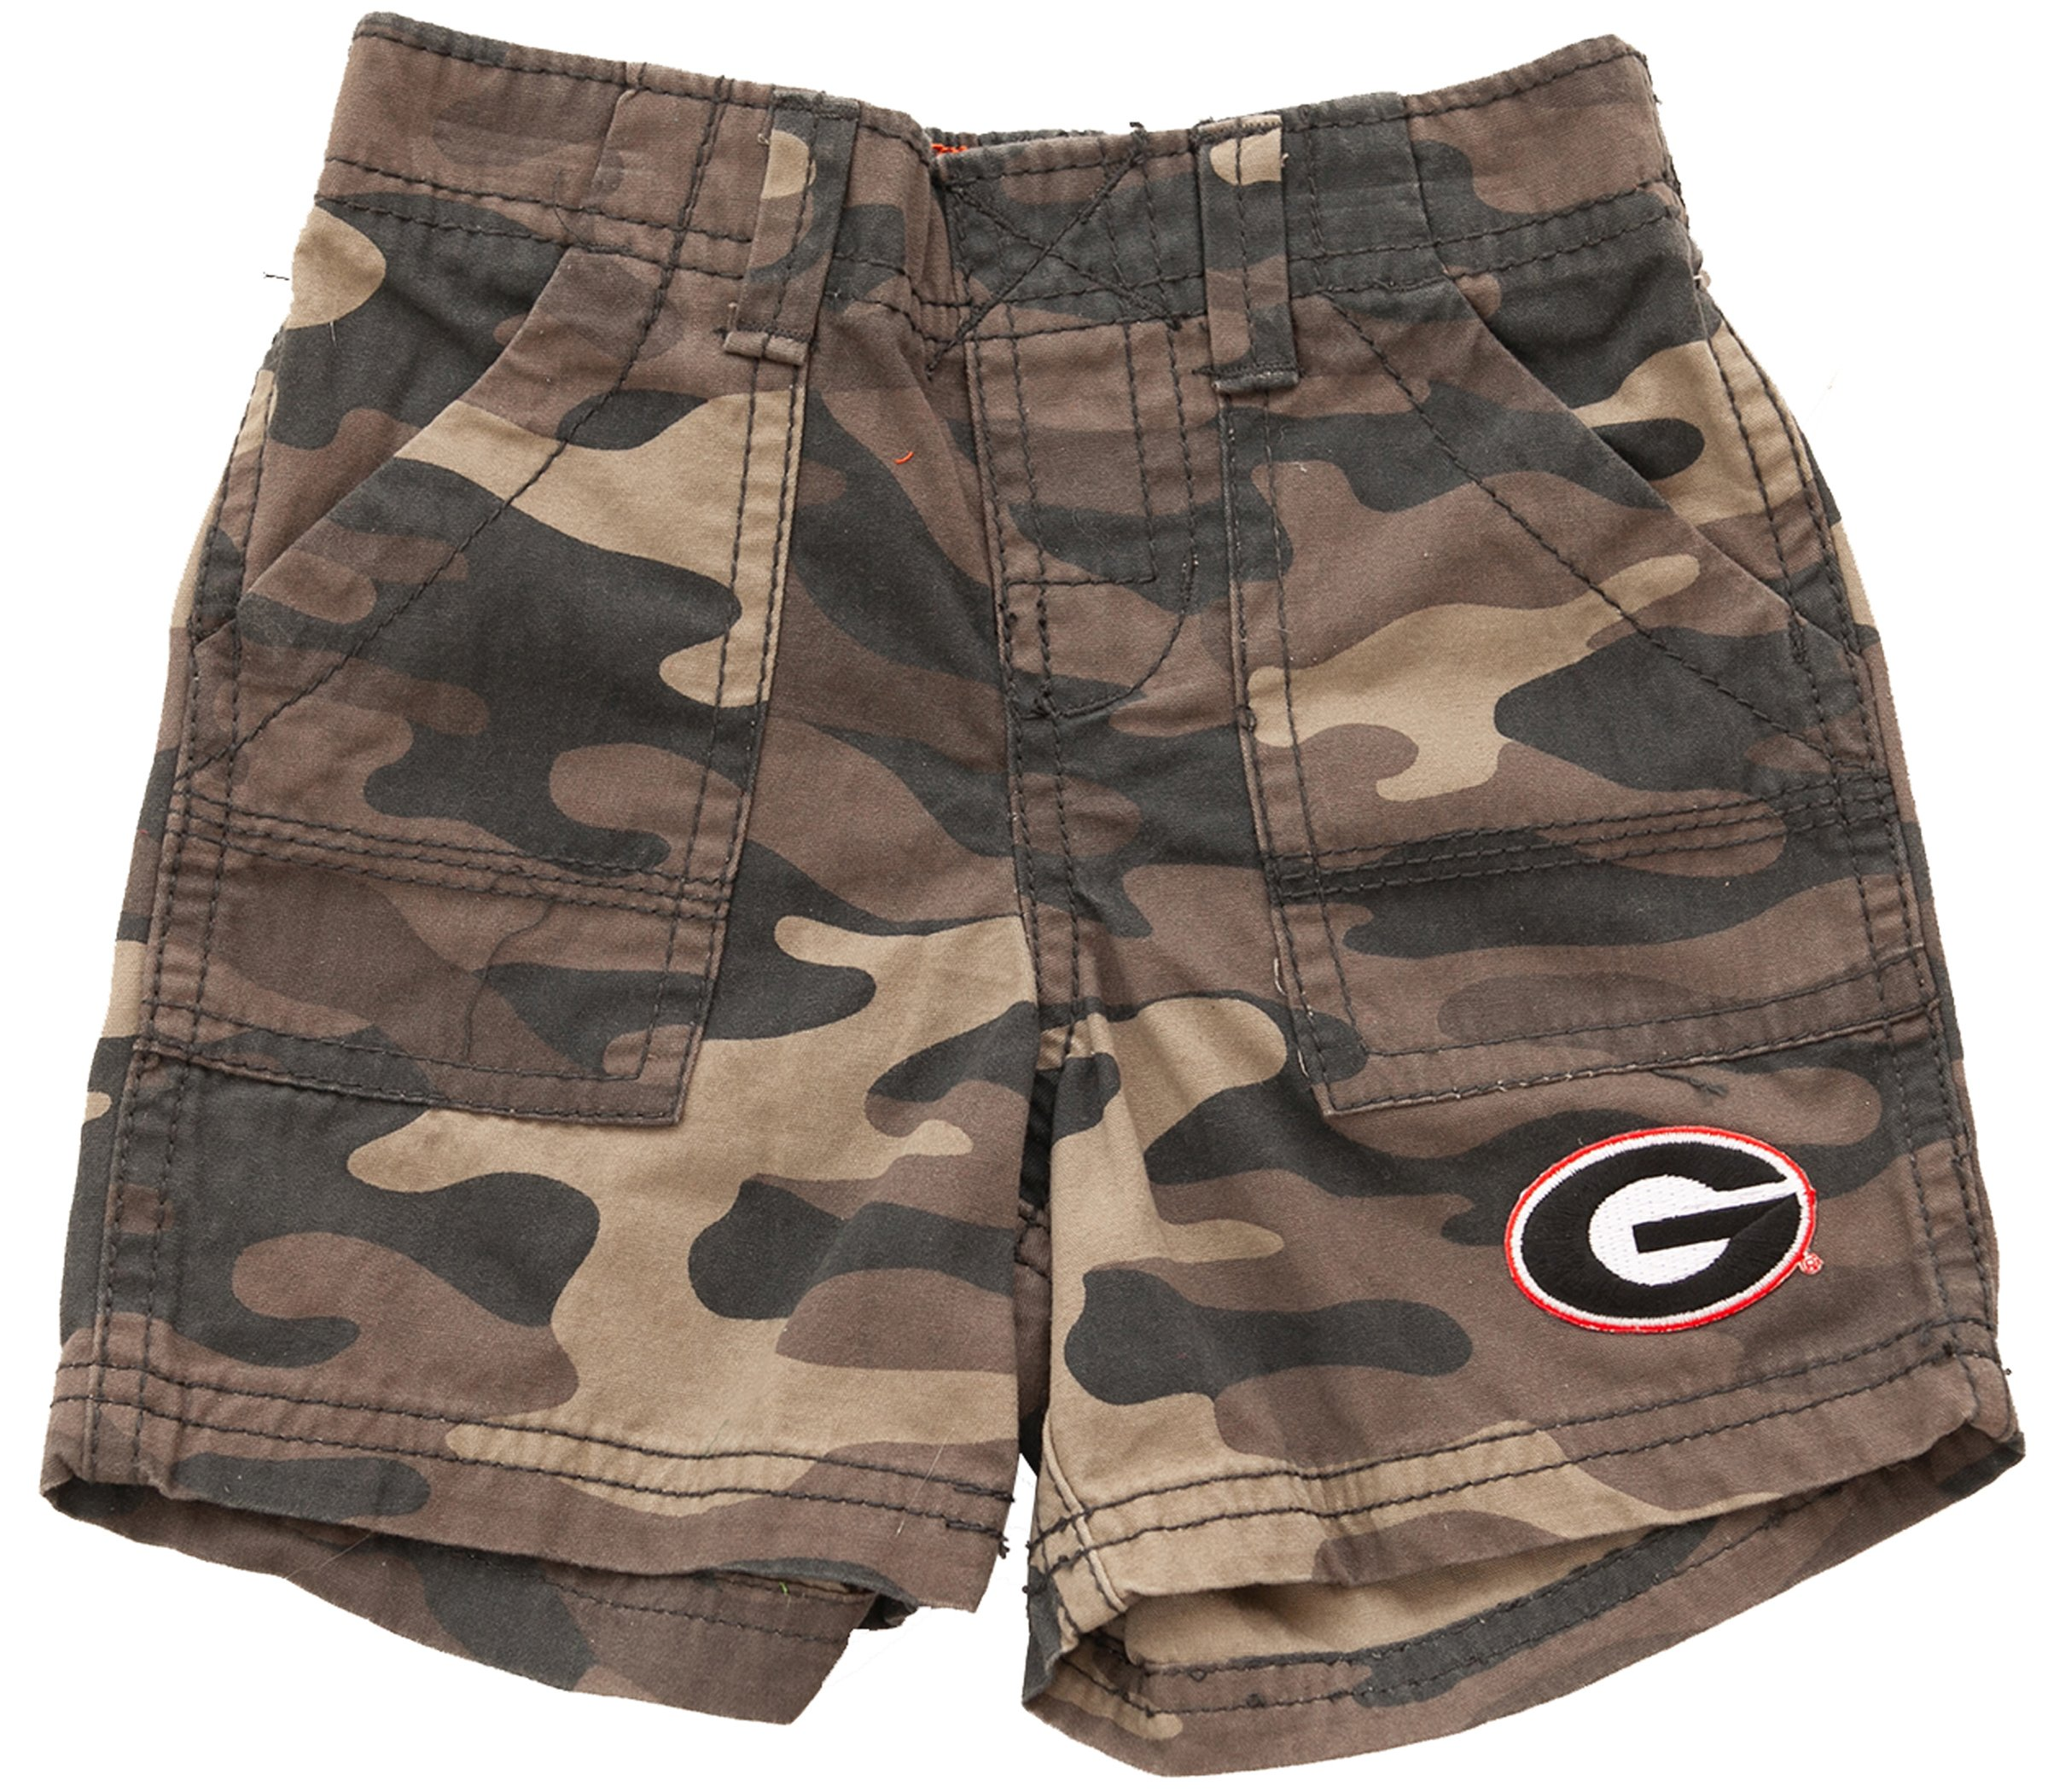 Georgia Bulldogs Camo Shorts 3T Toddler